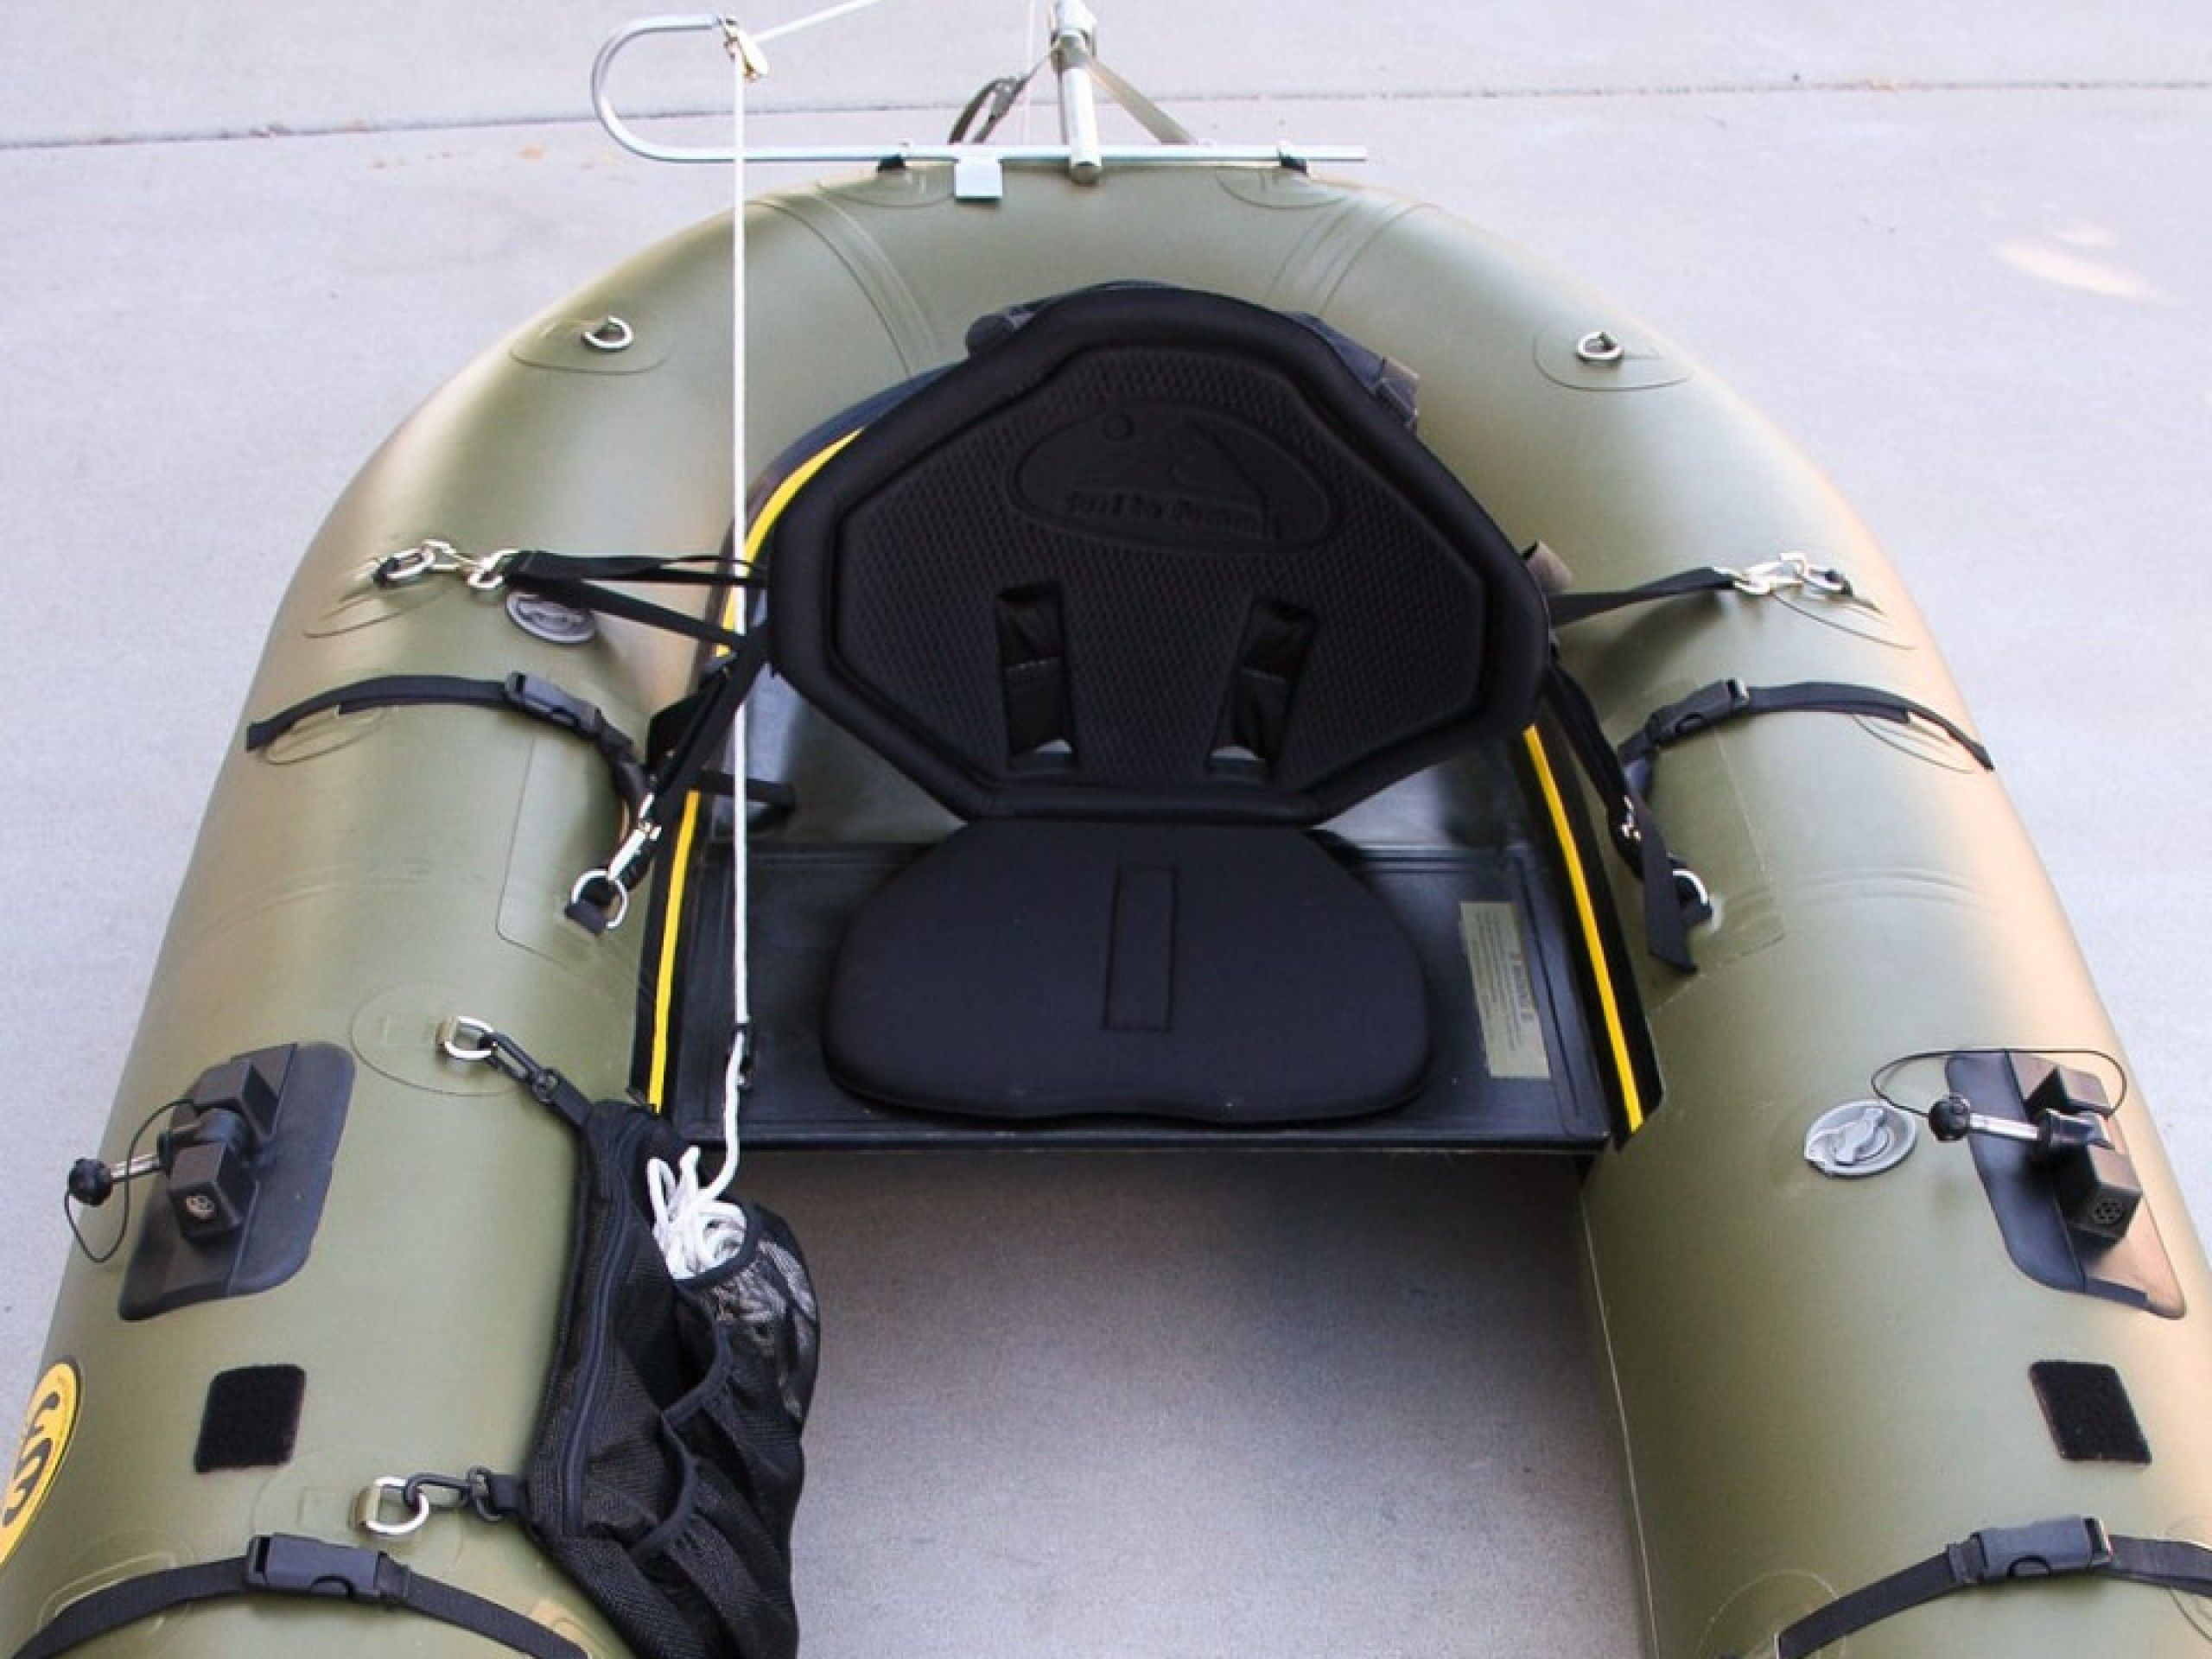 Water Master Fly Fishing Raft---I'm seriously looking at purchasing a Water Master.  Then going to Patagonia.  More contemplation needed... http://www.bigskyinflatablescom/